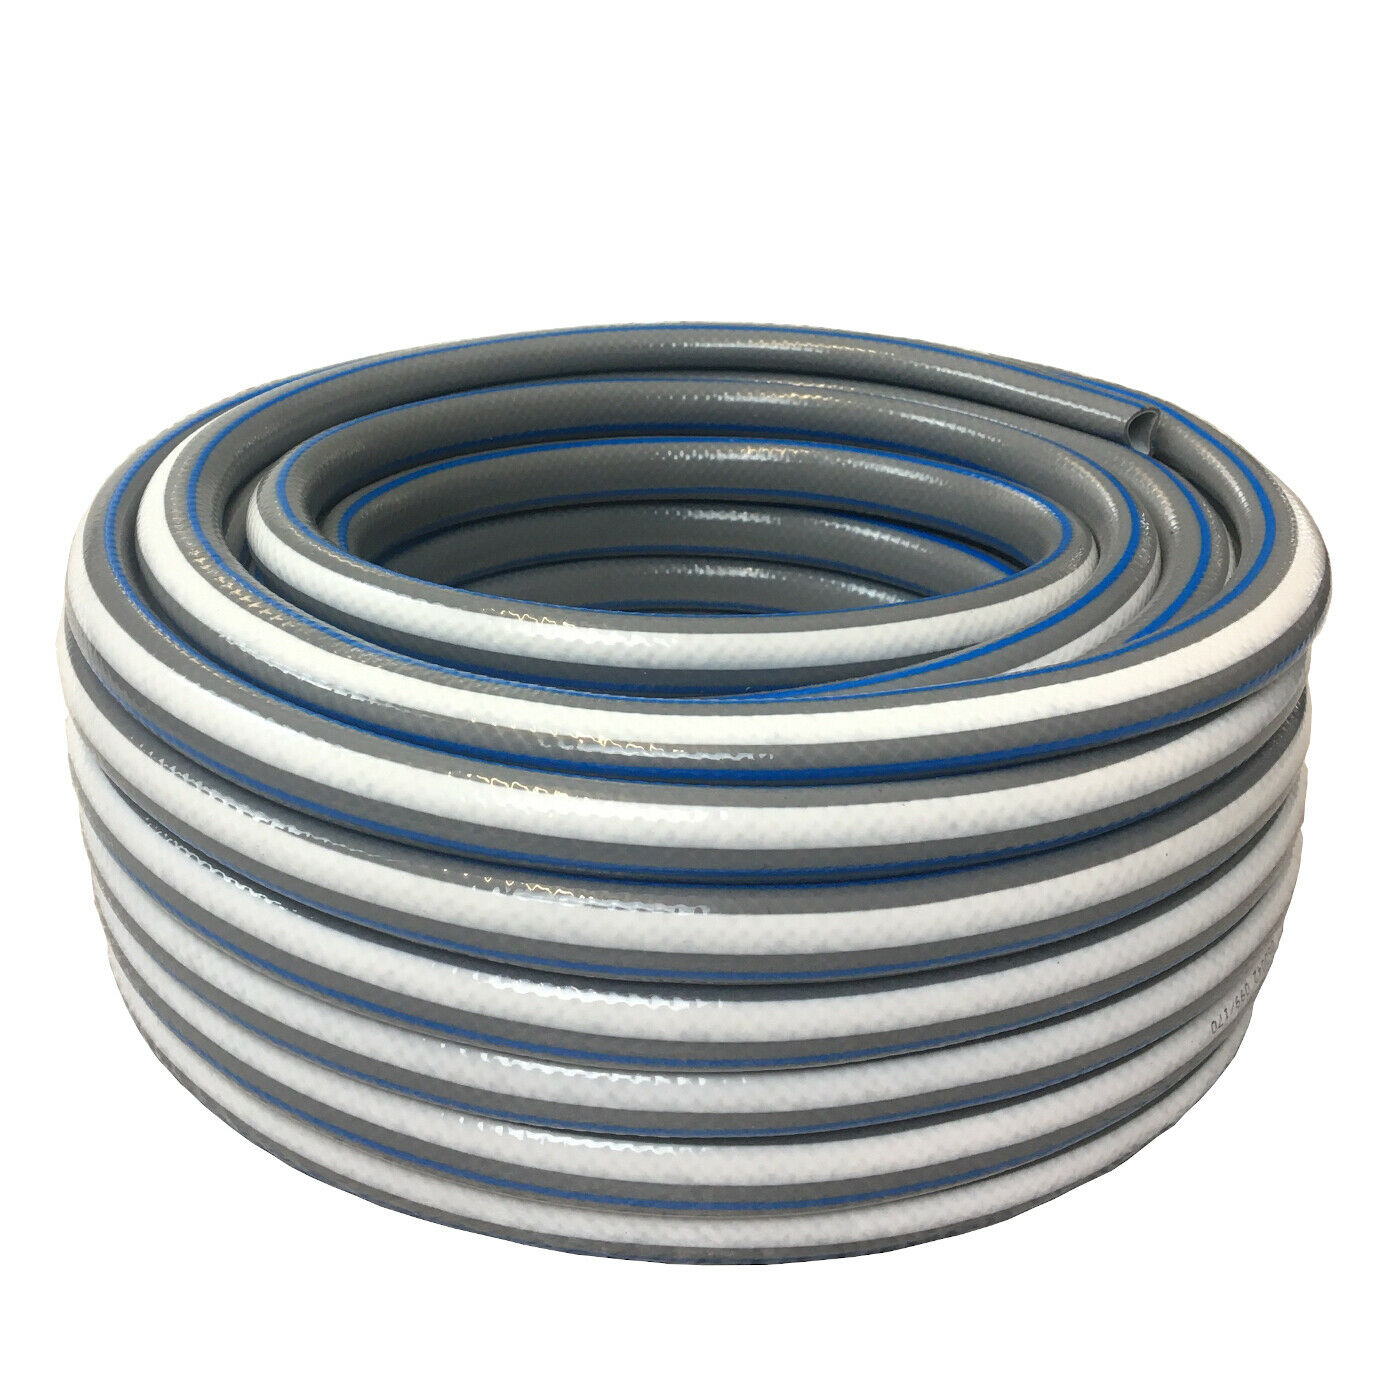 Reinforced Garden Hose 10m 20m 25m 30m 50m 4 Layer Outdoor Watering Pipe 1/2